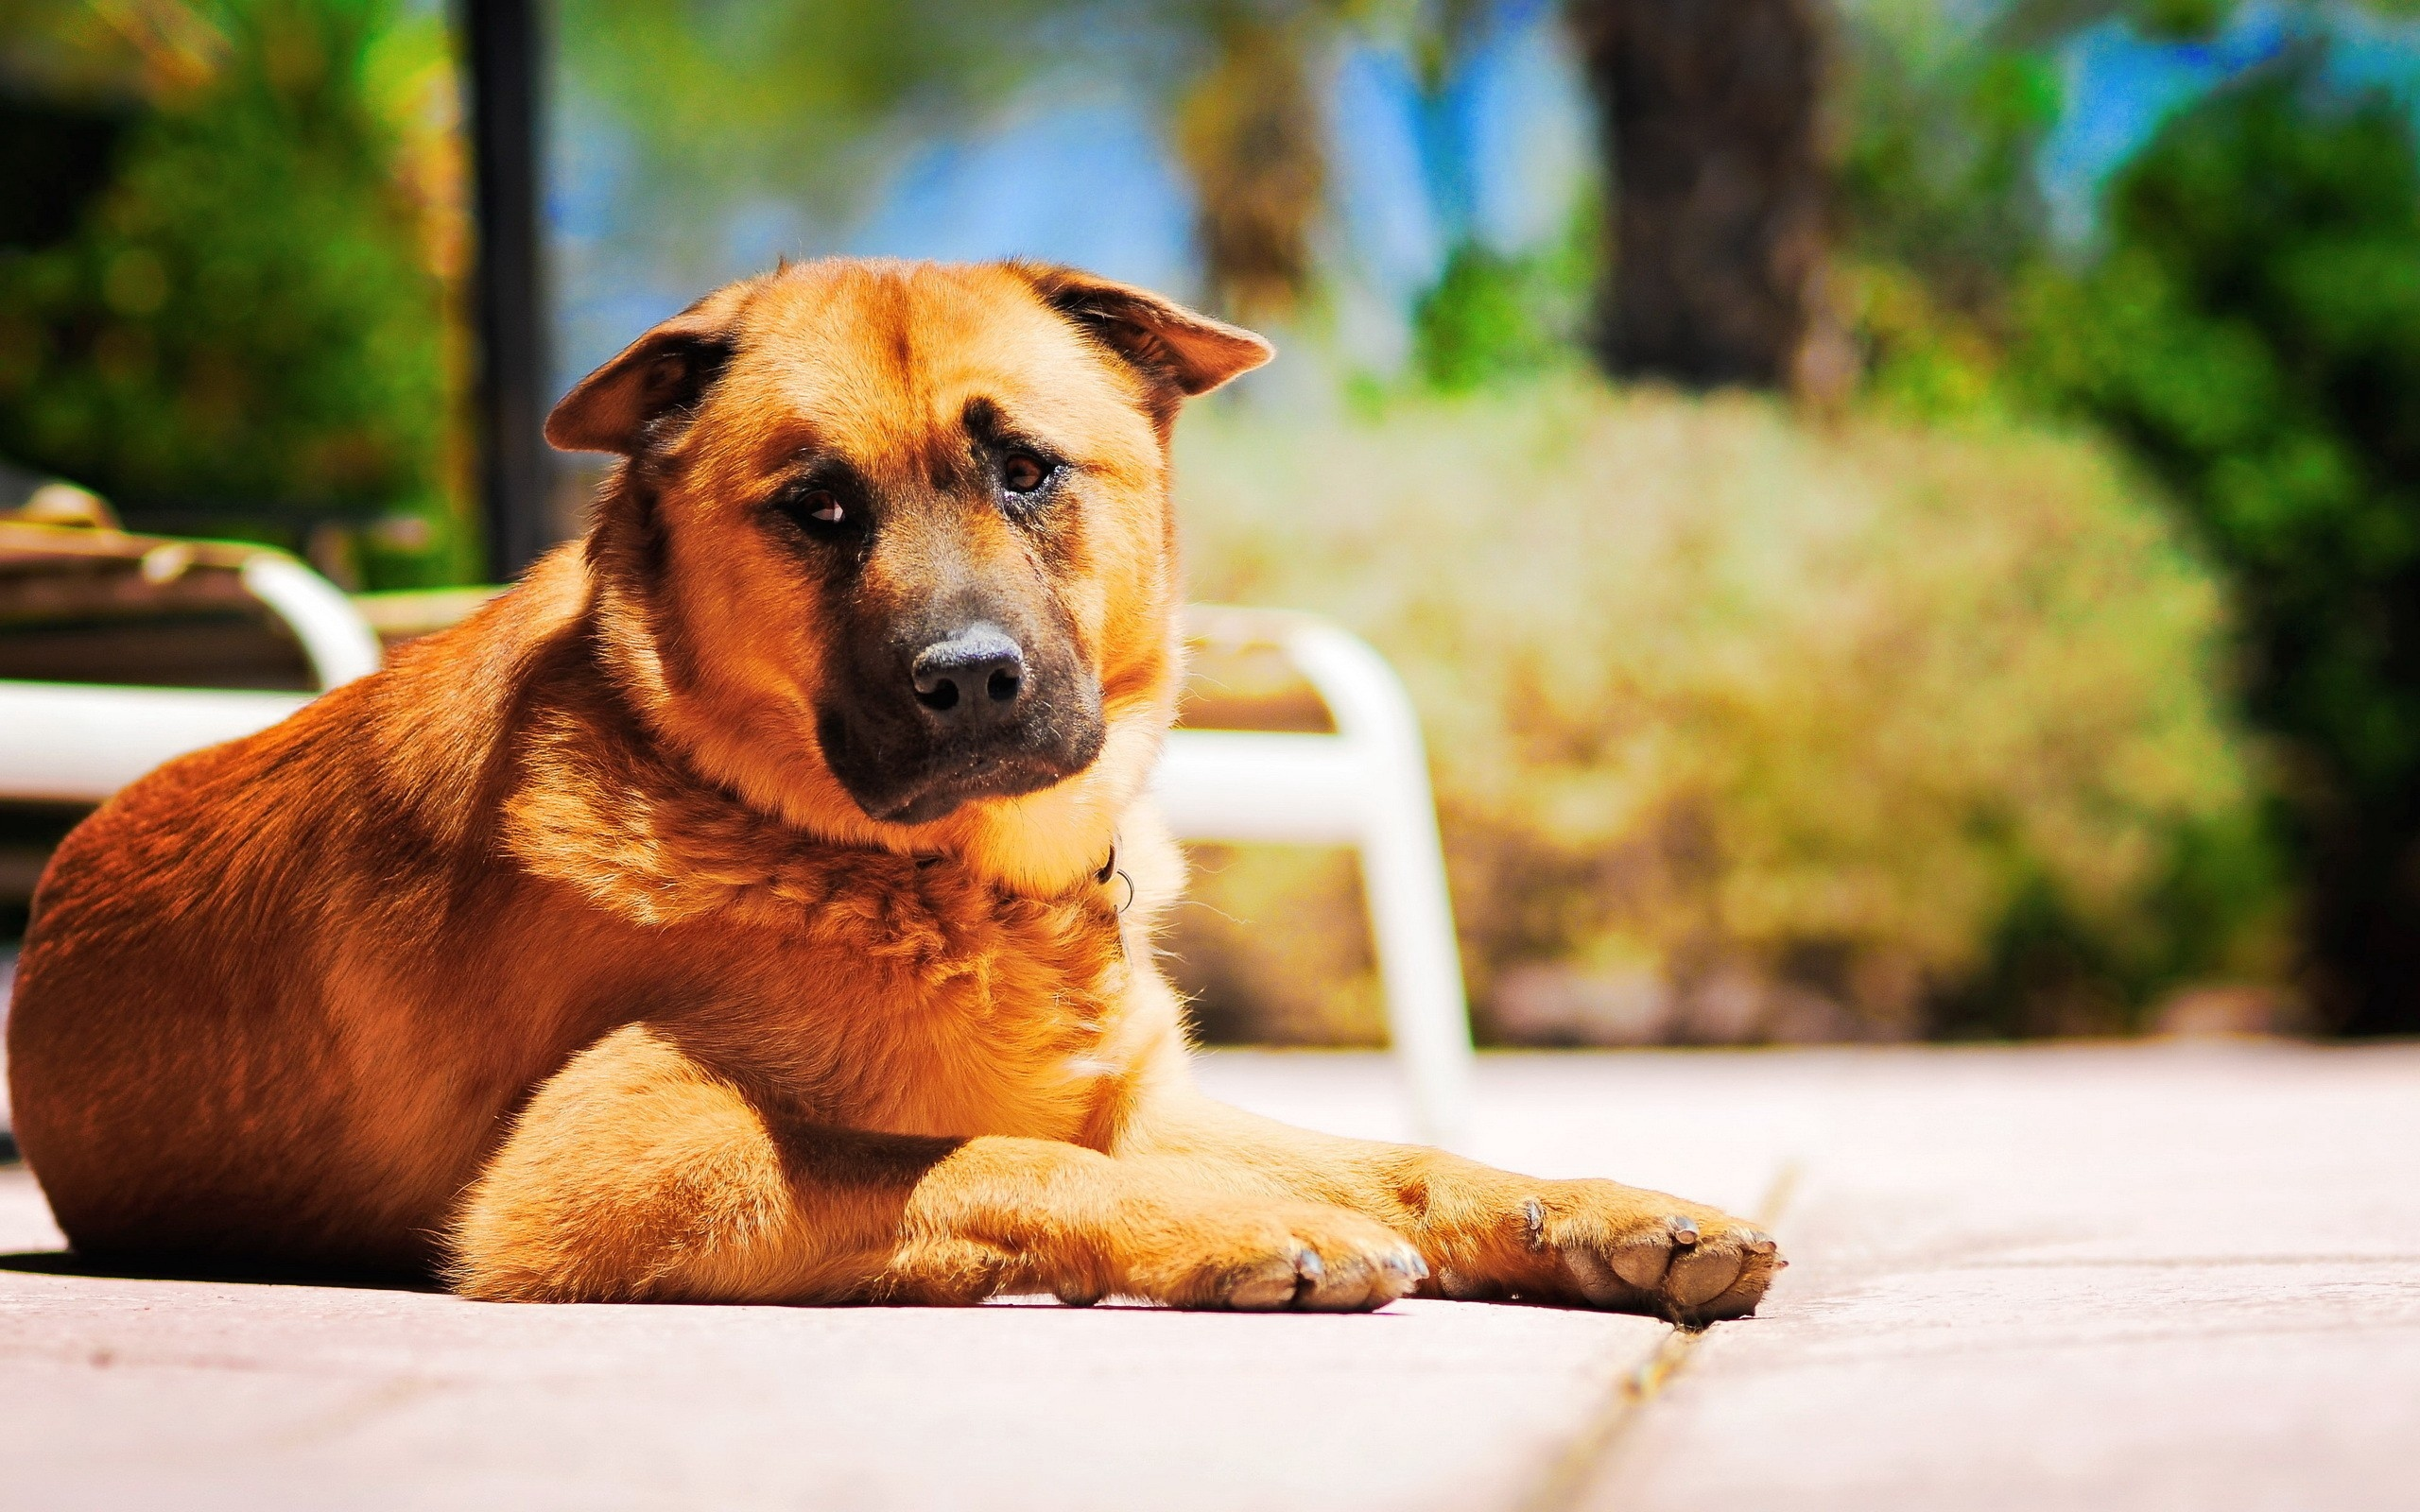 Dog Lie Down Sadness Grief Road   Stock Photos Images HD 2560x1600